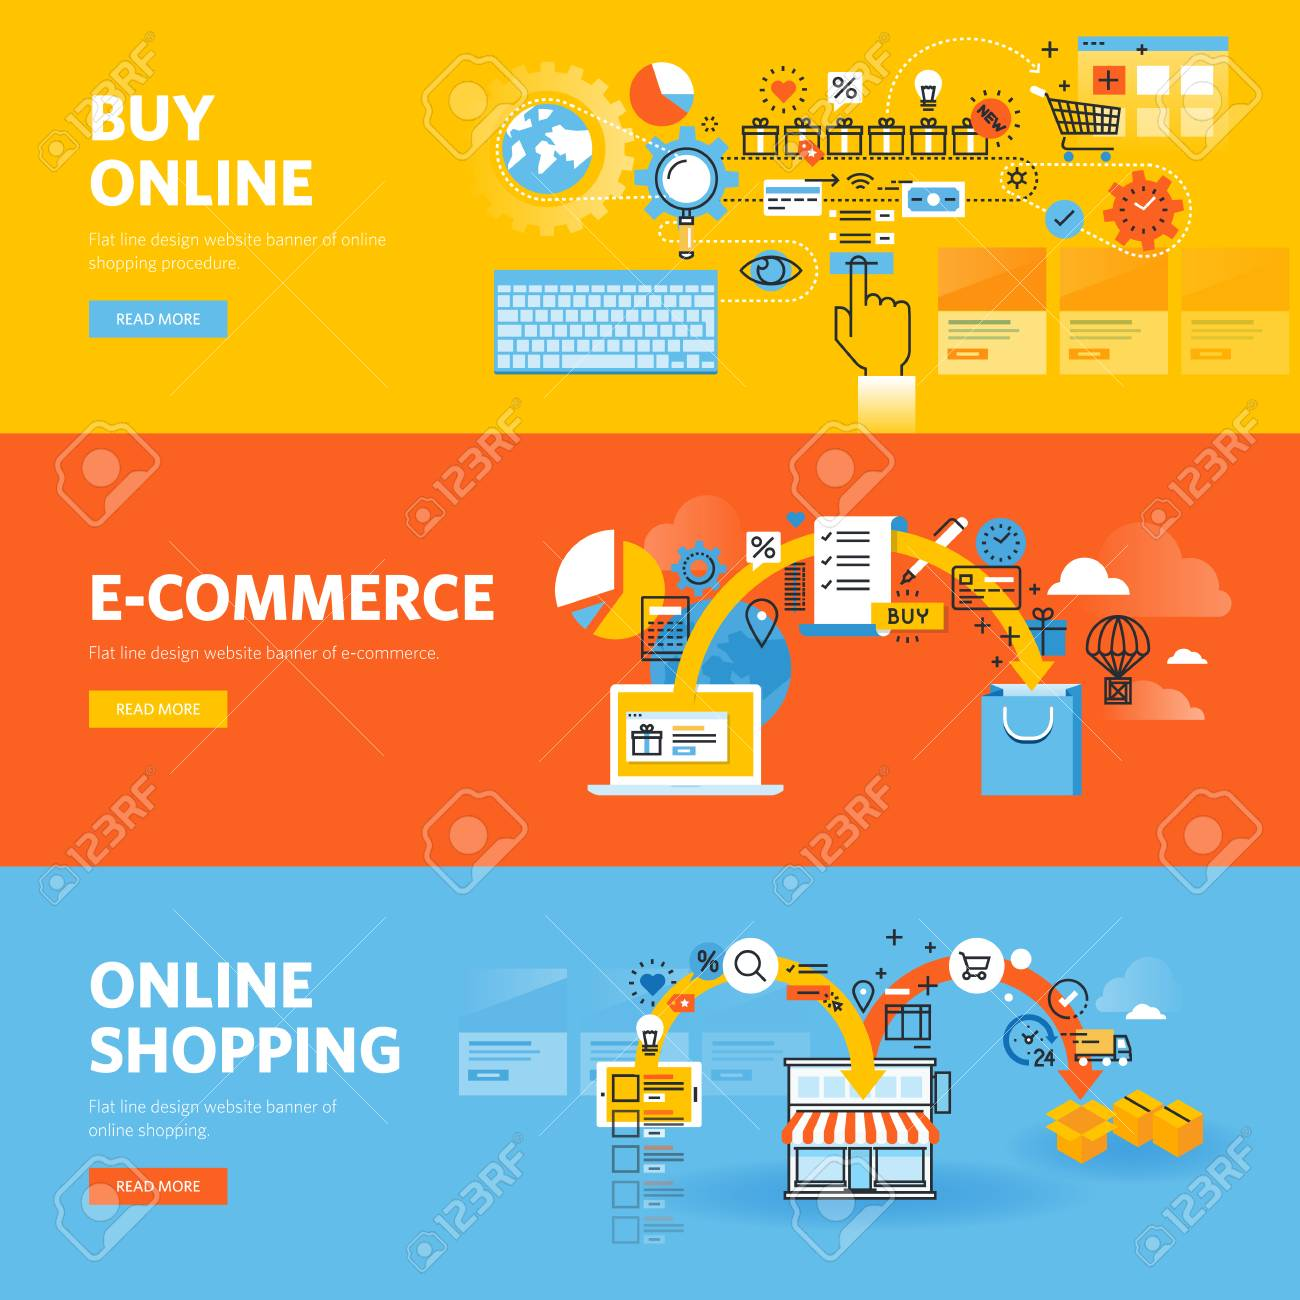 Ecommerce Marketing Banners Cheap Banners